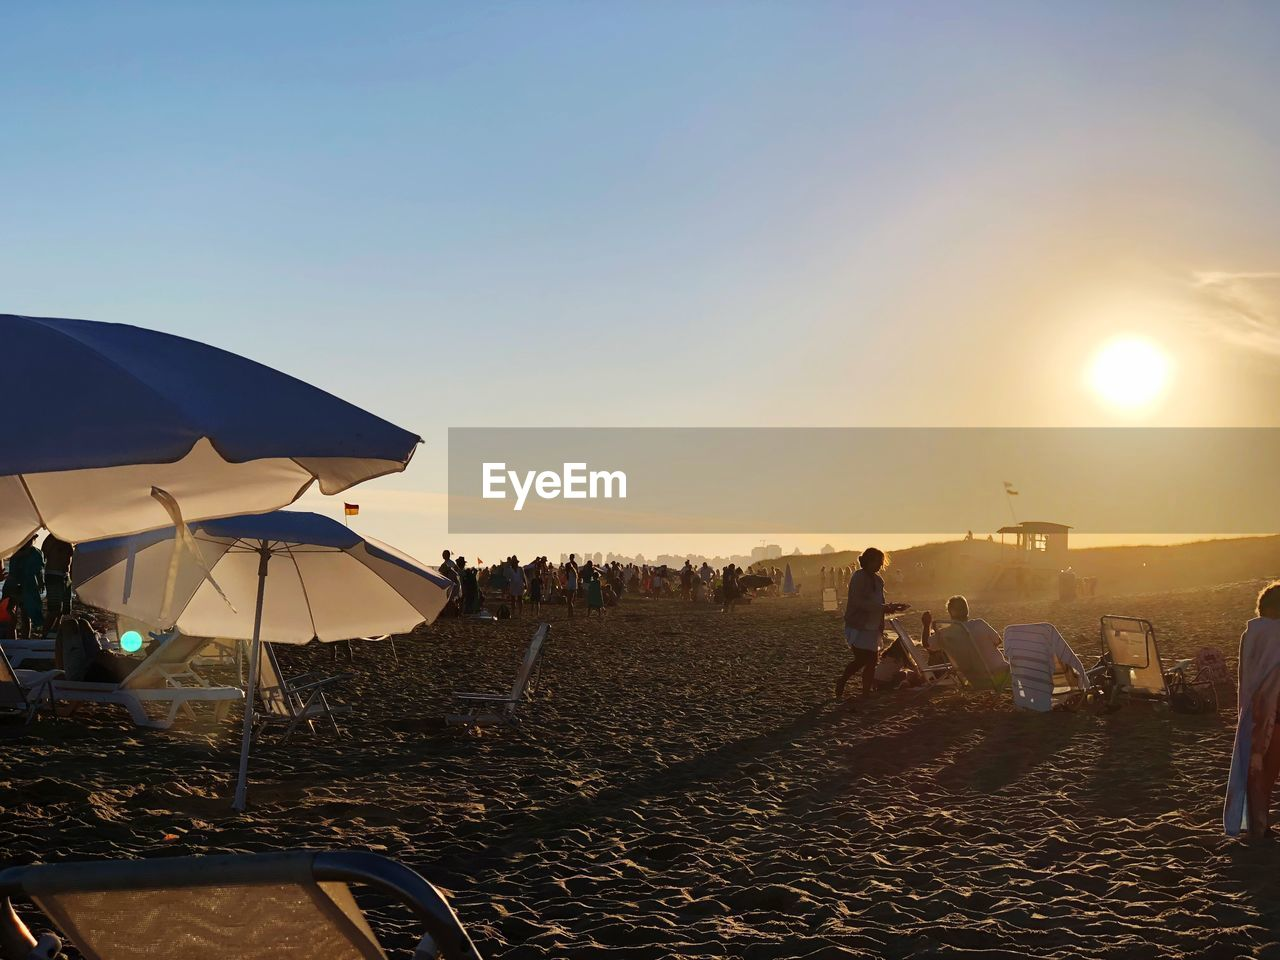 sky, land, umbrella, beach, parasol, nature, protection, sunset, real people, sand, sun, clear sky, sunlight, lifestyles, leisure activity, beach umbrella, large group of people, crowd, security, group of people, lens flare, outdoors